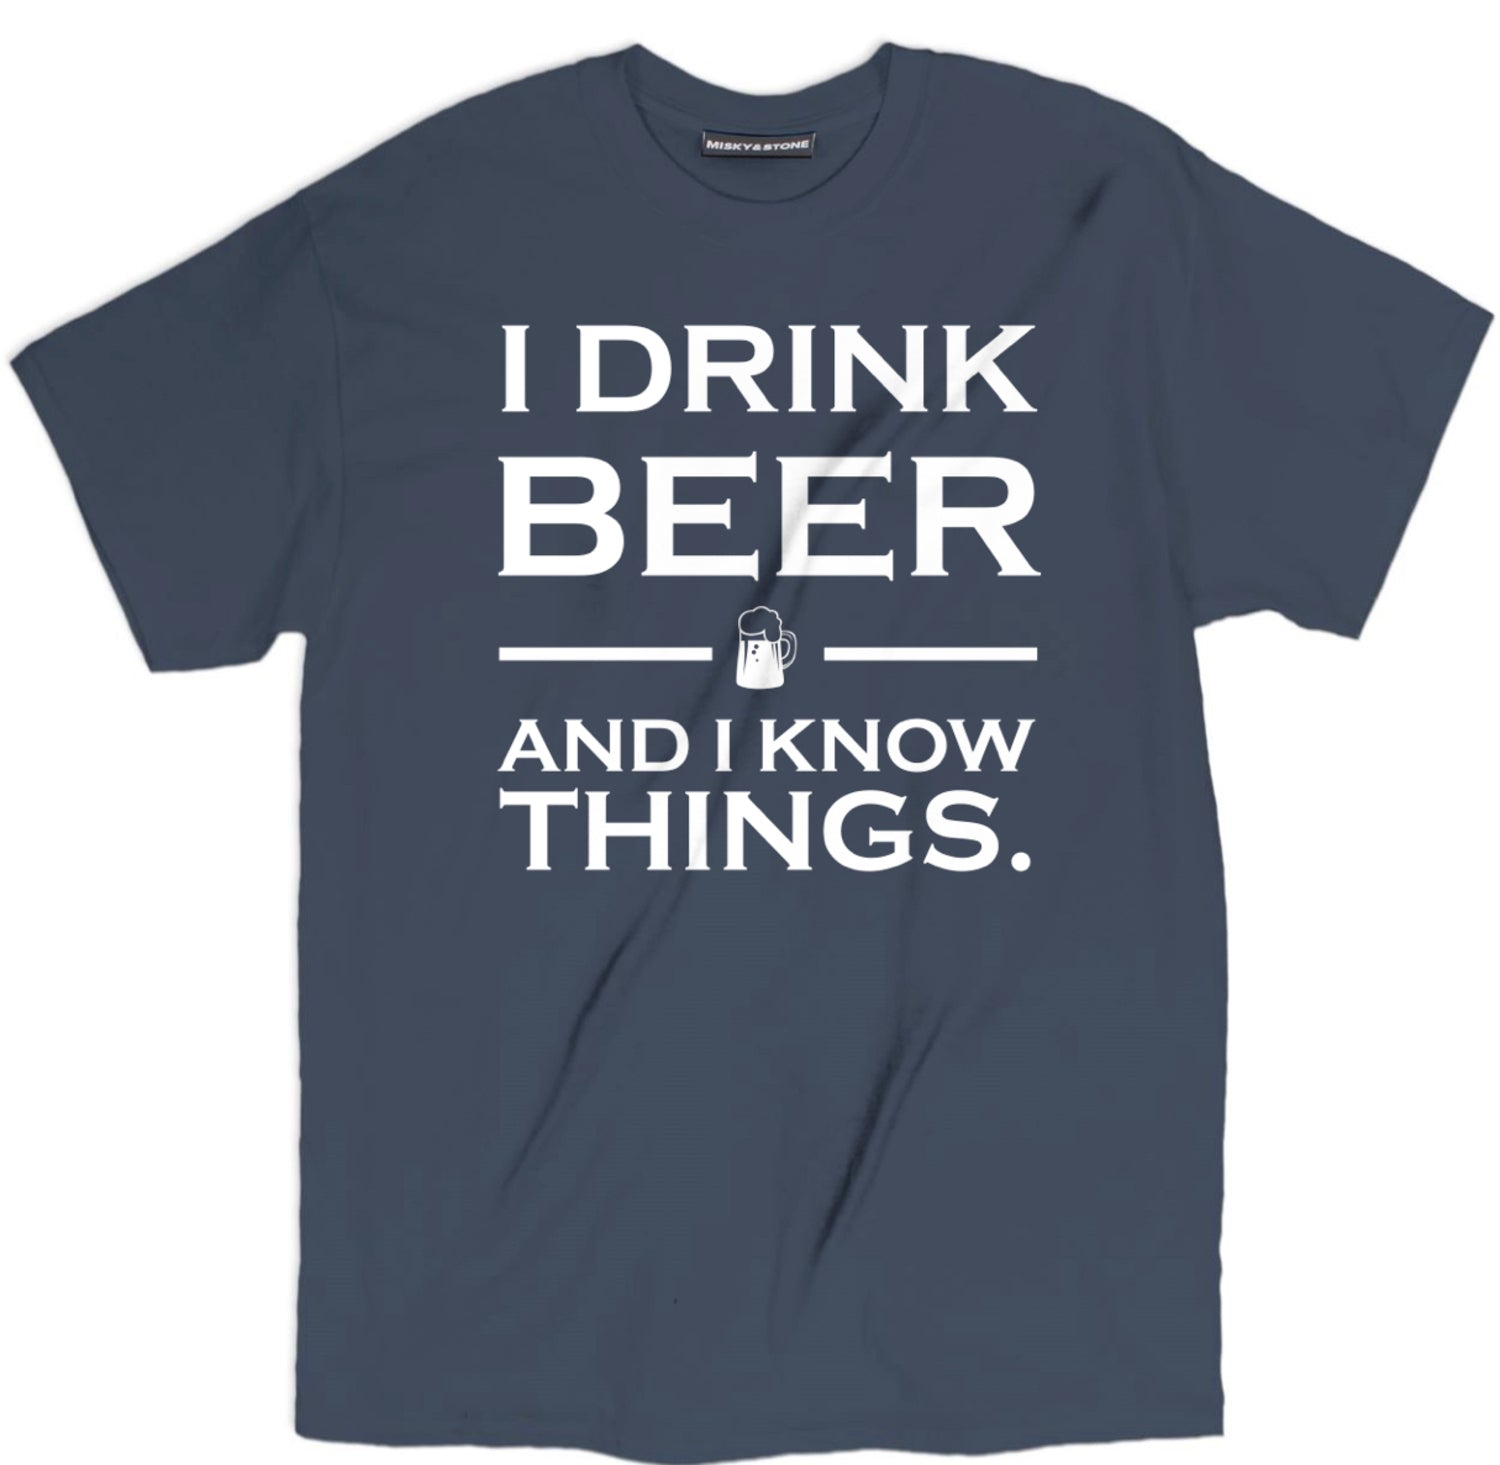 i drink beer t shirt, beer shirts, funny beer shirts, beer tees, beer tee shirts, funny beer t shirts, drinking shirts, alcohol shirts, funny drinking shirts,